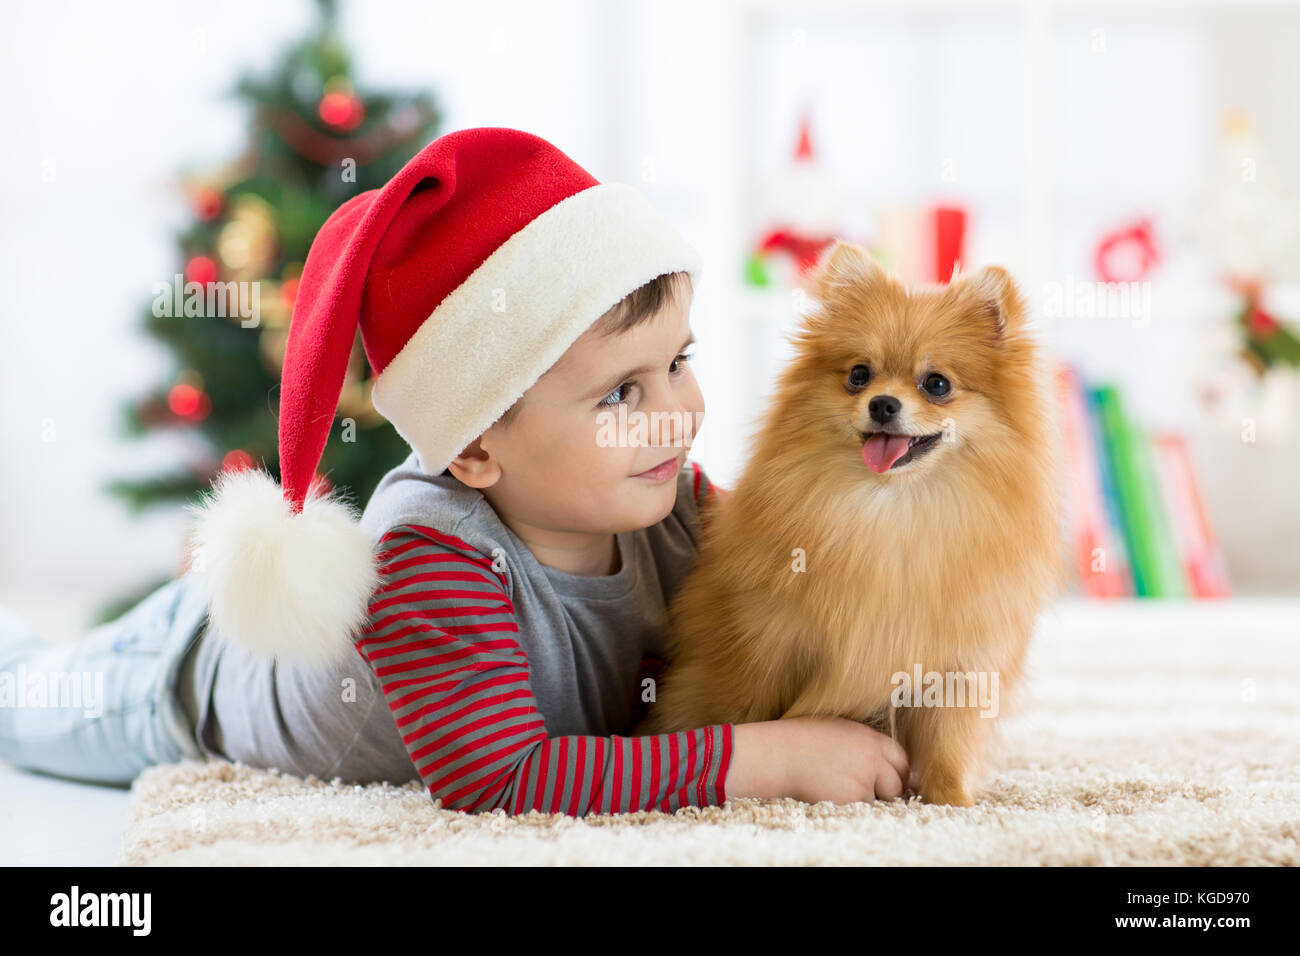 Little boy embracing puppy dog at Christmas, New year background. Stock Photo